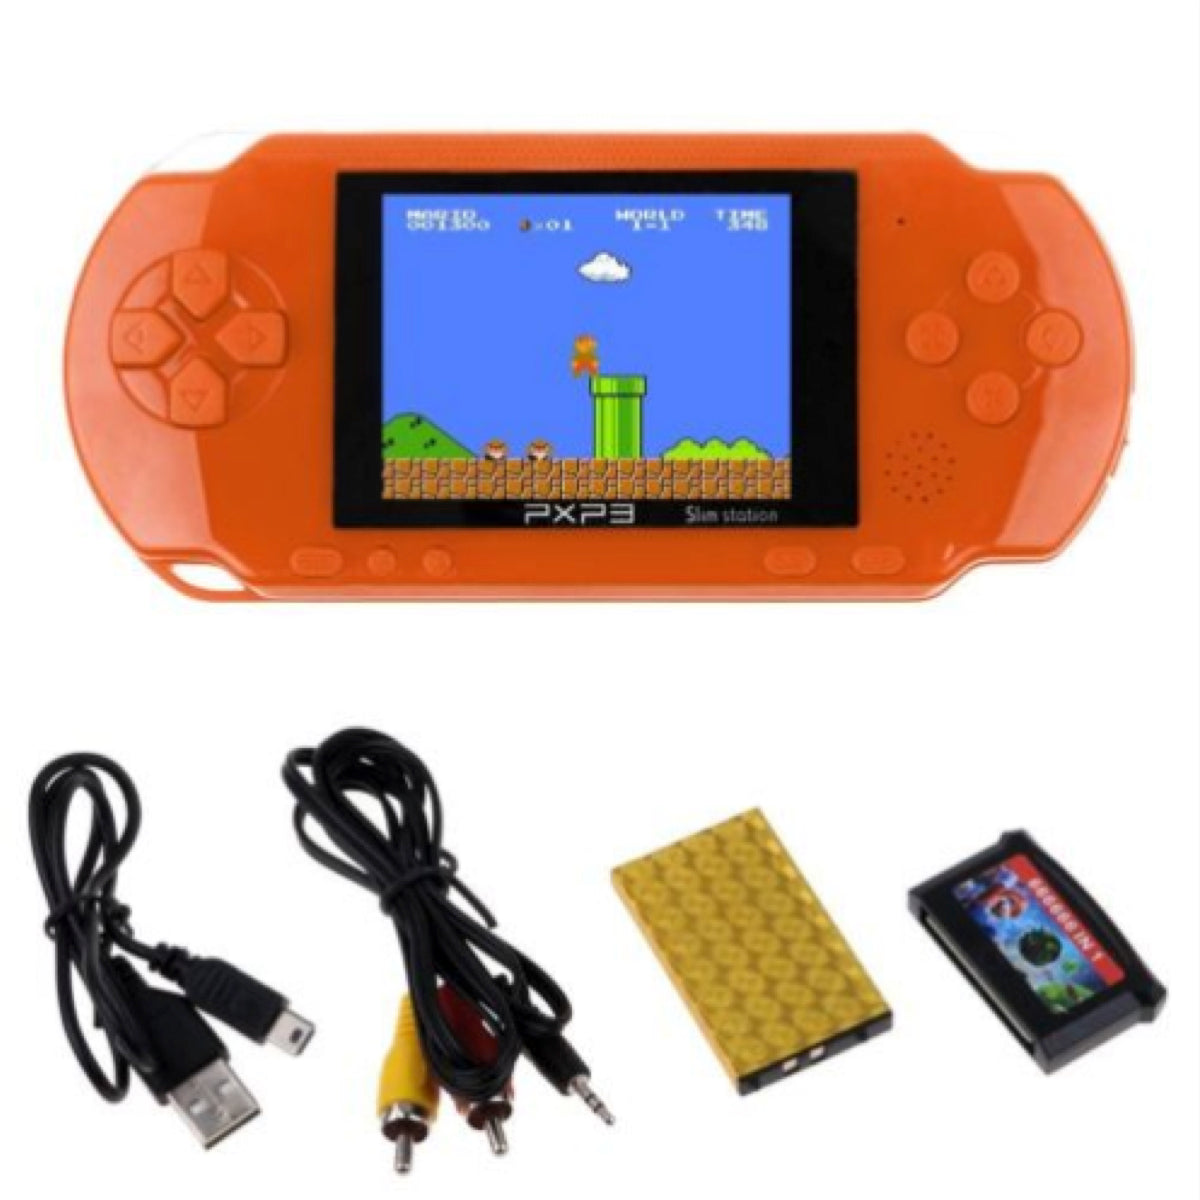 PXP3 Portable Handheld Video Game System with 150+ Games